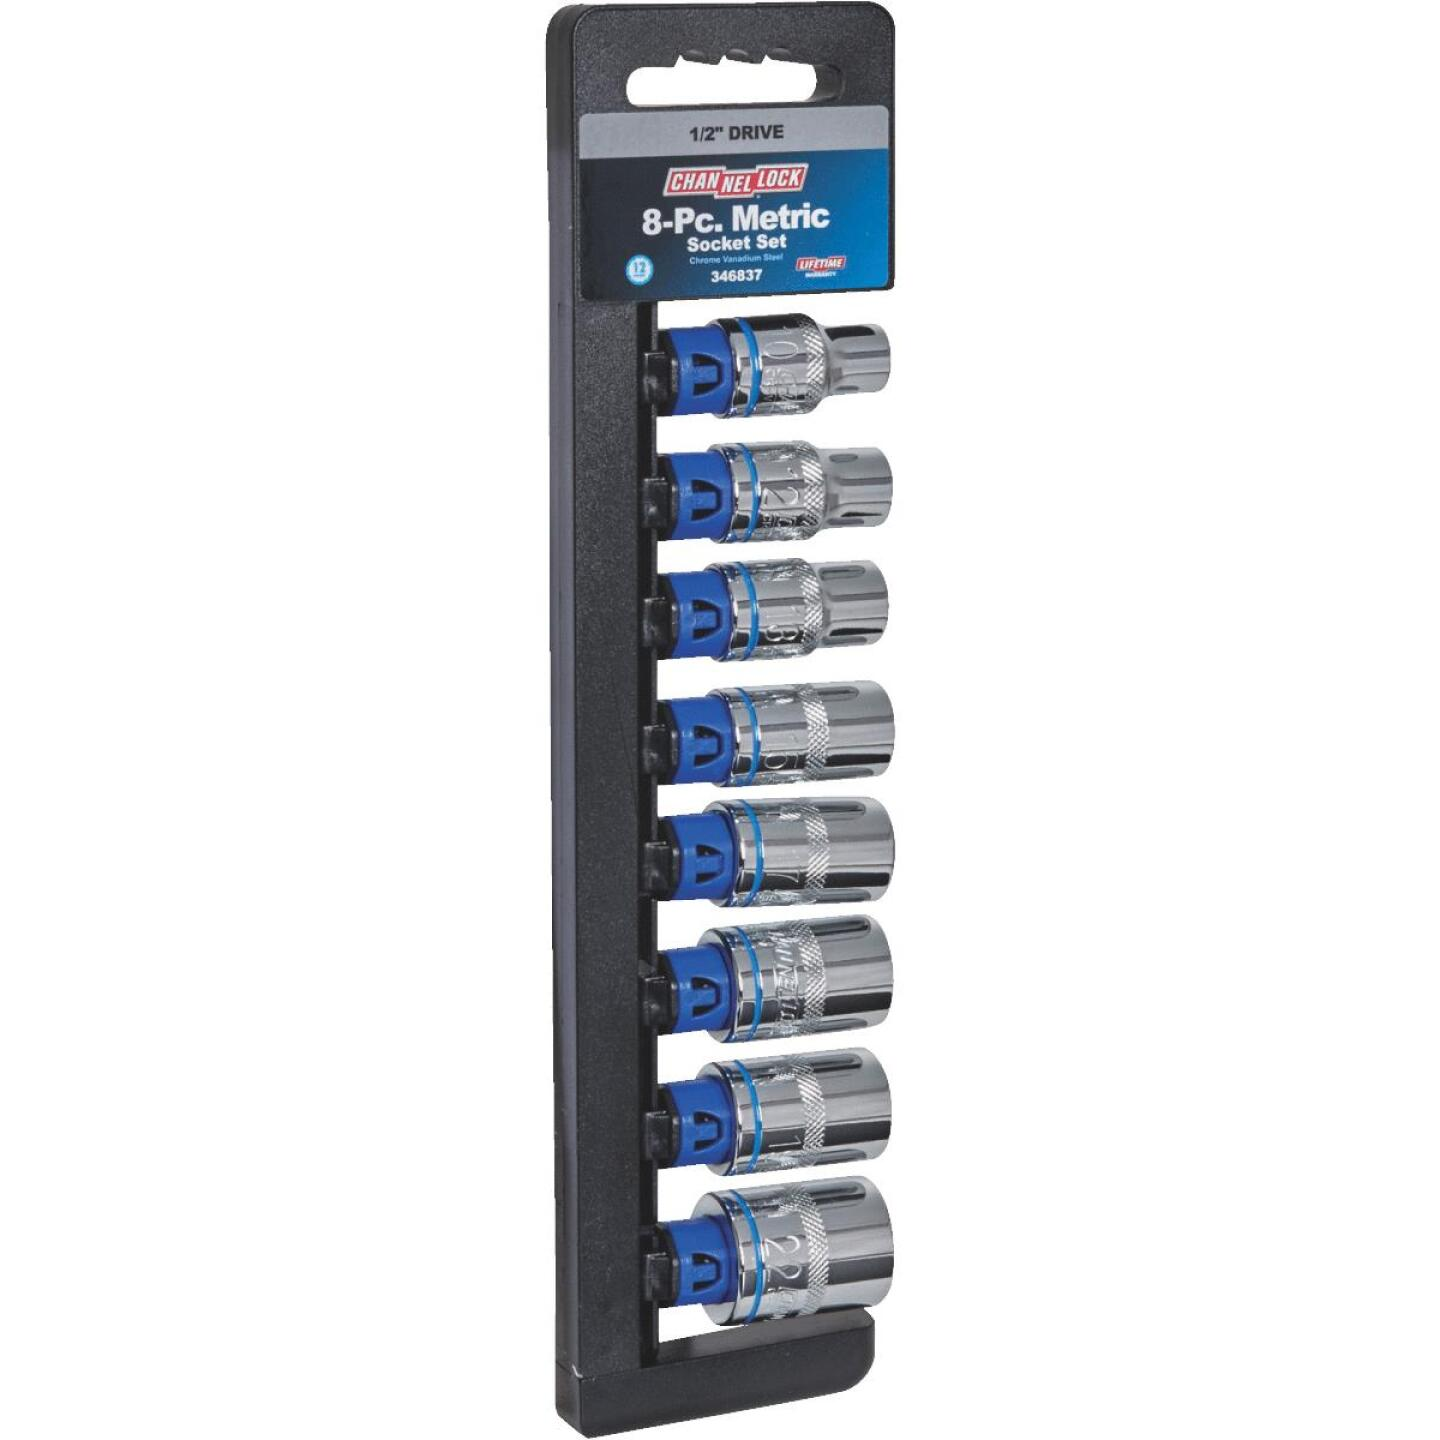 Channellock Metric 1/2 In. Drive 12-Point Shallow Socket Set (8-Piece) Image 1